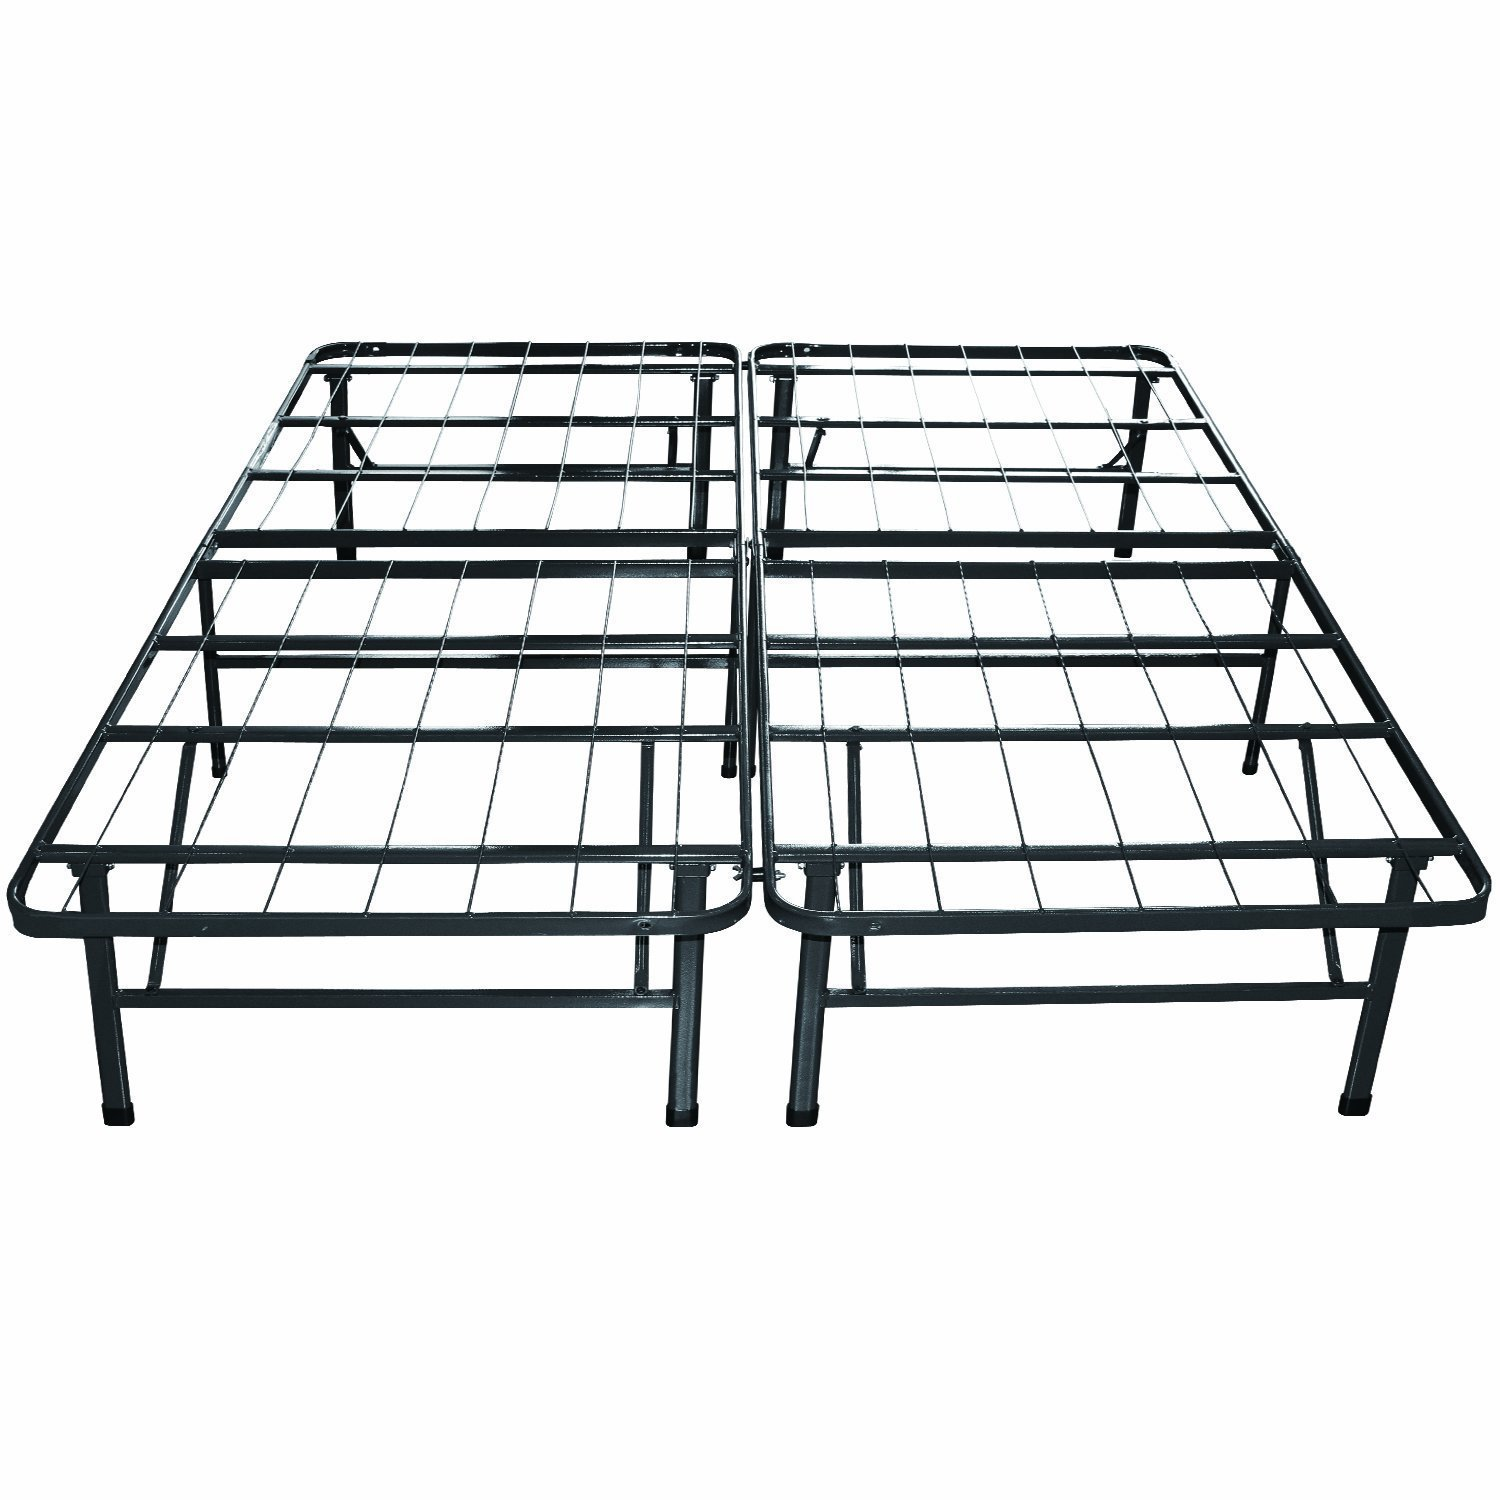 Images of metal king size bed frame amazon.com: classic brands hercules heavy-duty 14-inch platform metal bed  frame | mattress ltzxekk